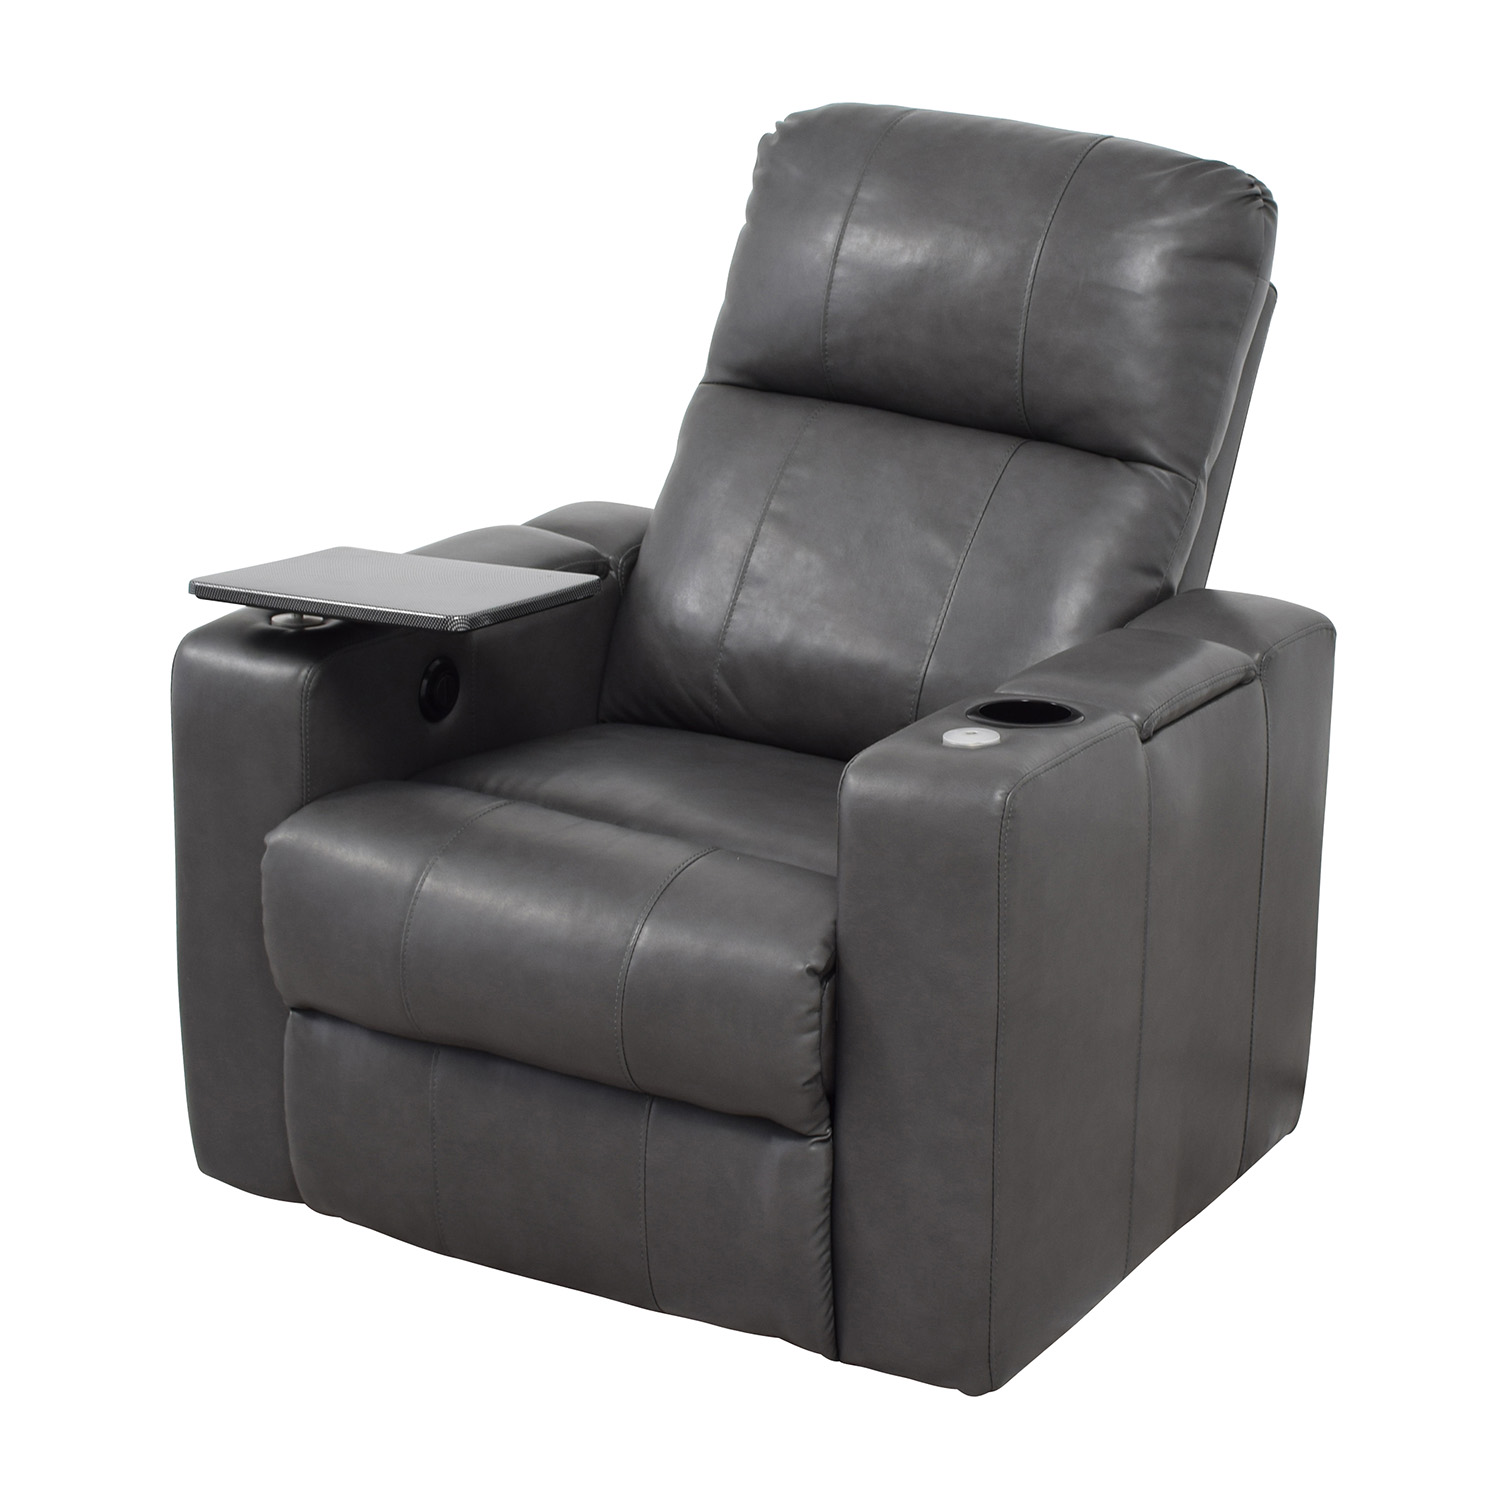 90 OFF  Grey Leather Recliner with Storage and USB Port